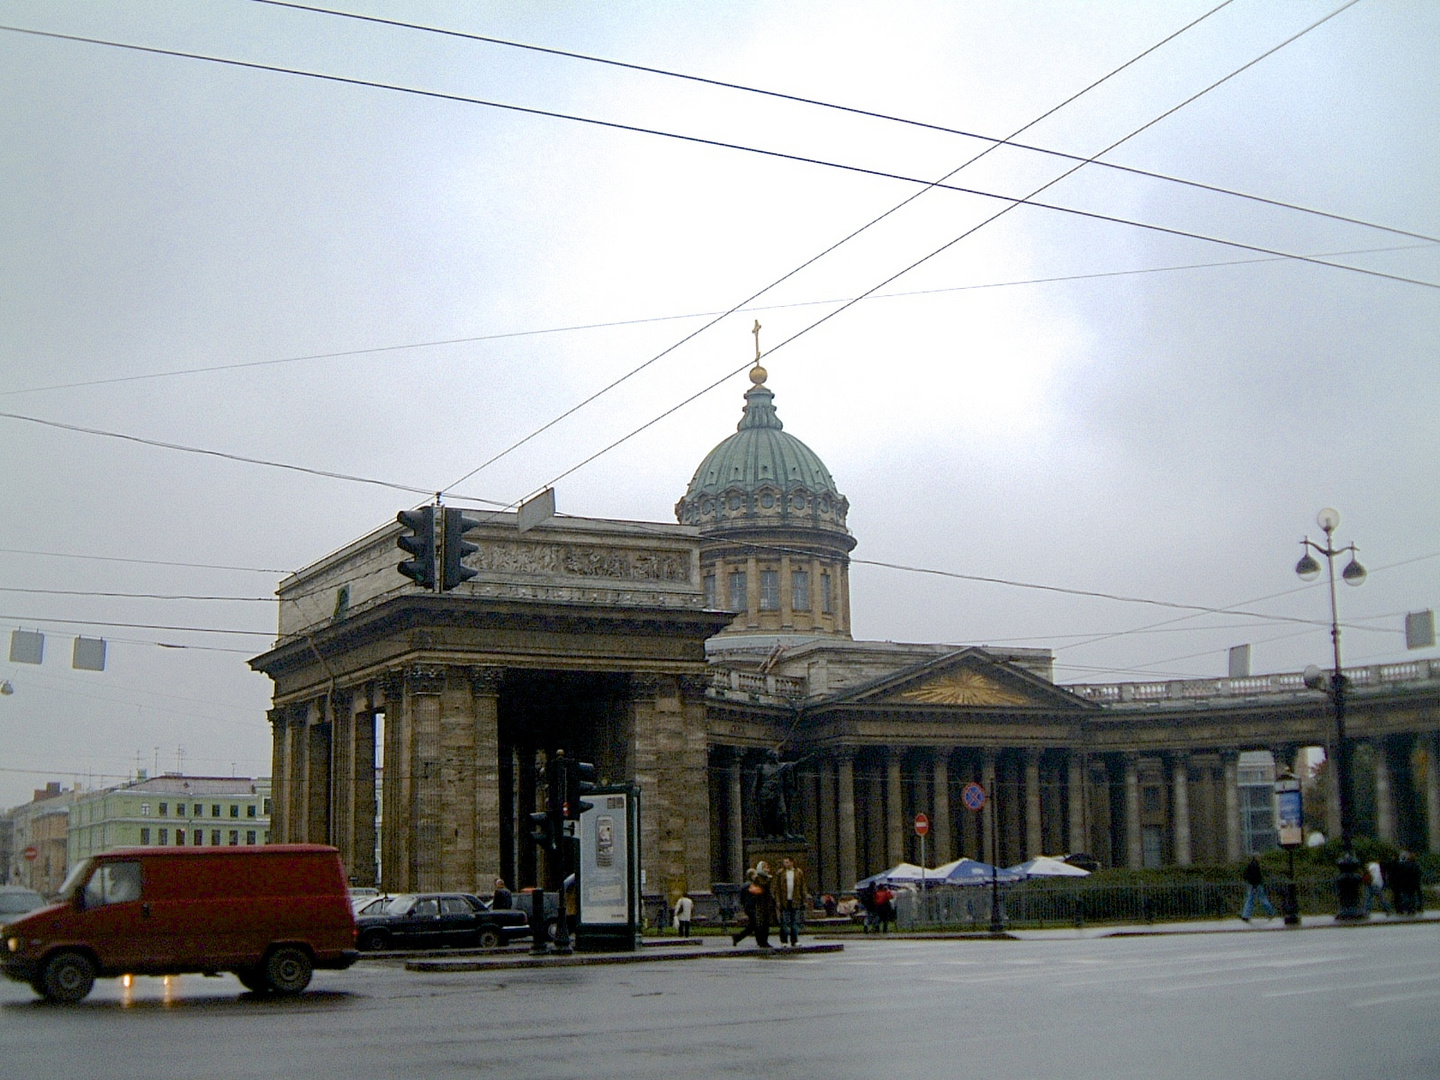 Cathedral of the Mother of God of Kasan at the Newski-Prospekt